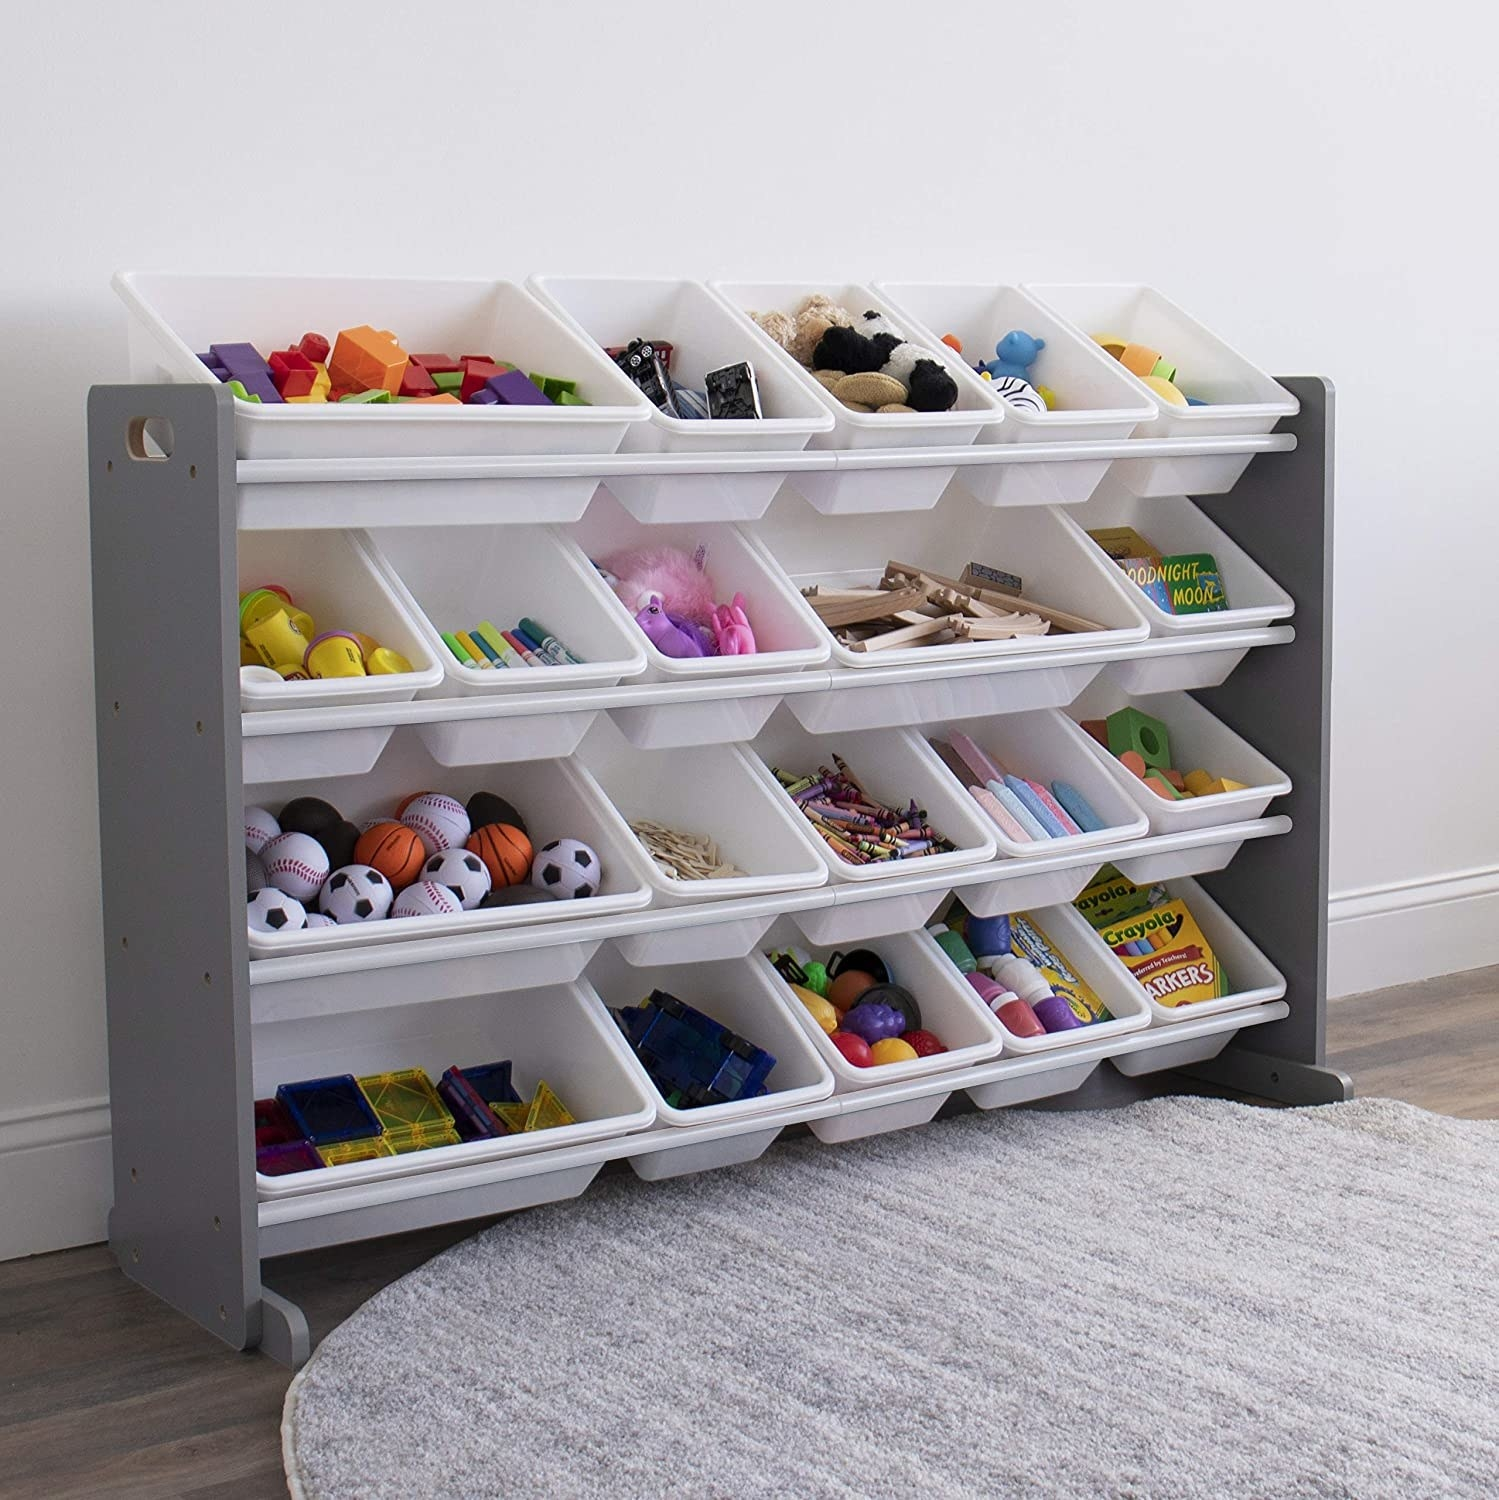 the storage shelf in a room with toys in the bins